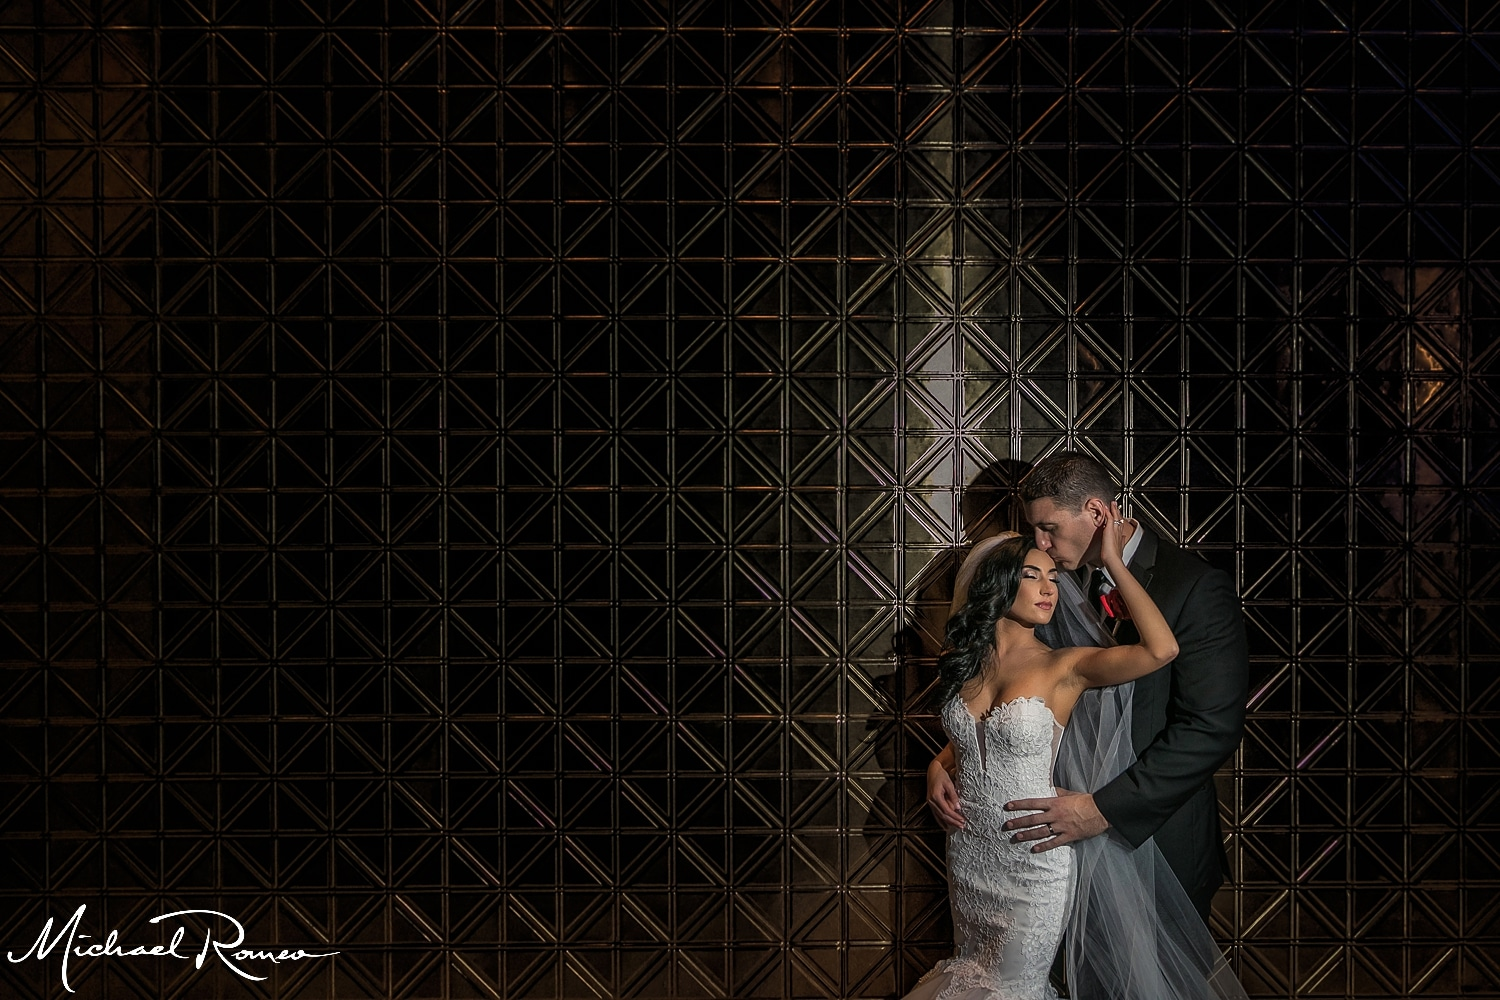 New Jersey Wedding photography cinematography Michael Romeo Creations 0743 2 - Wedding Gallery